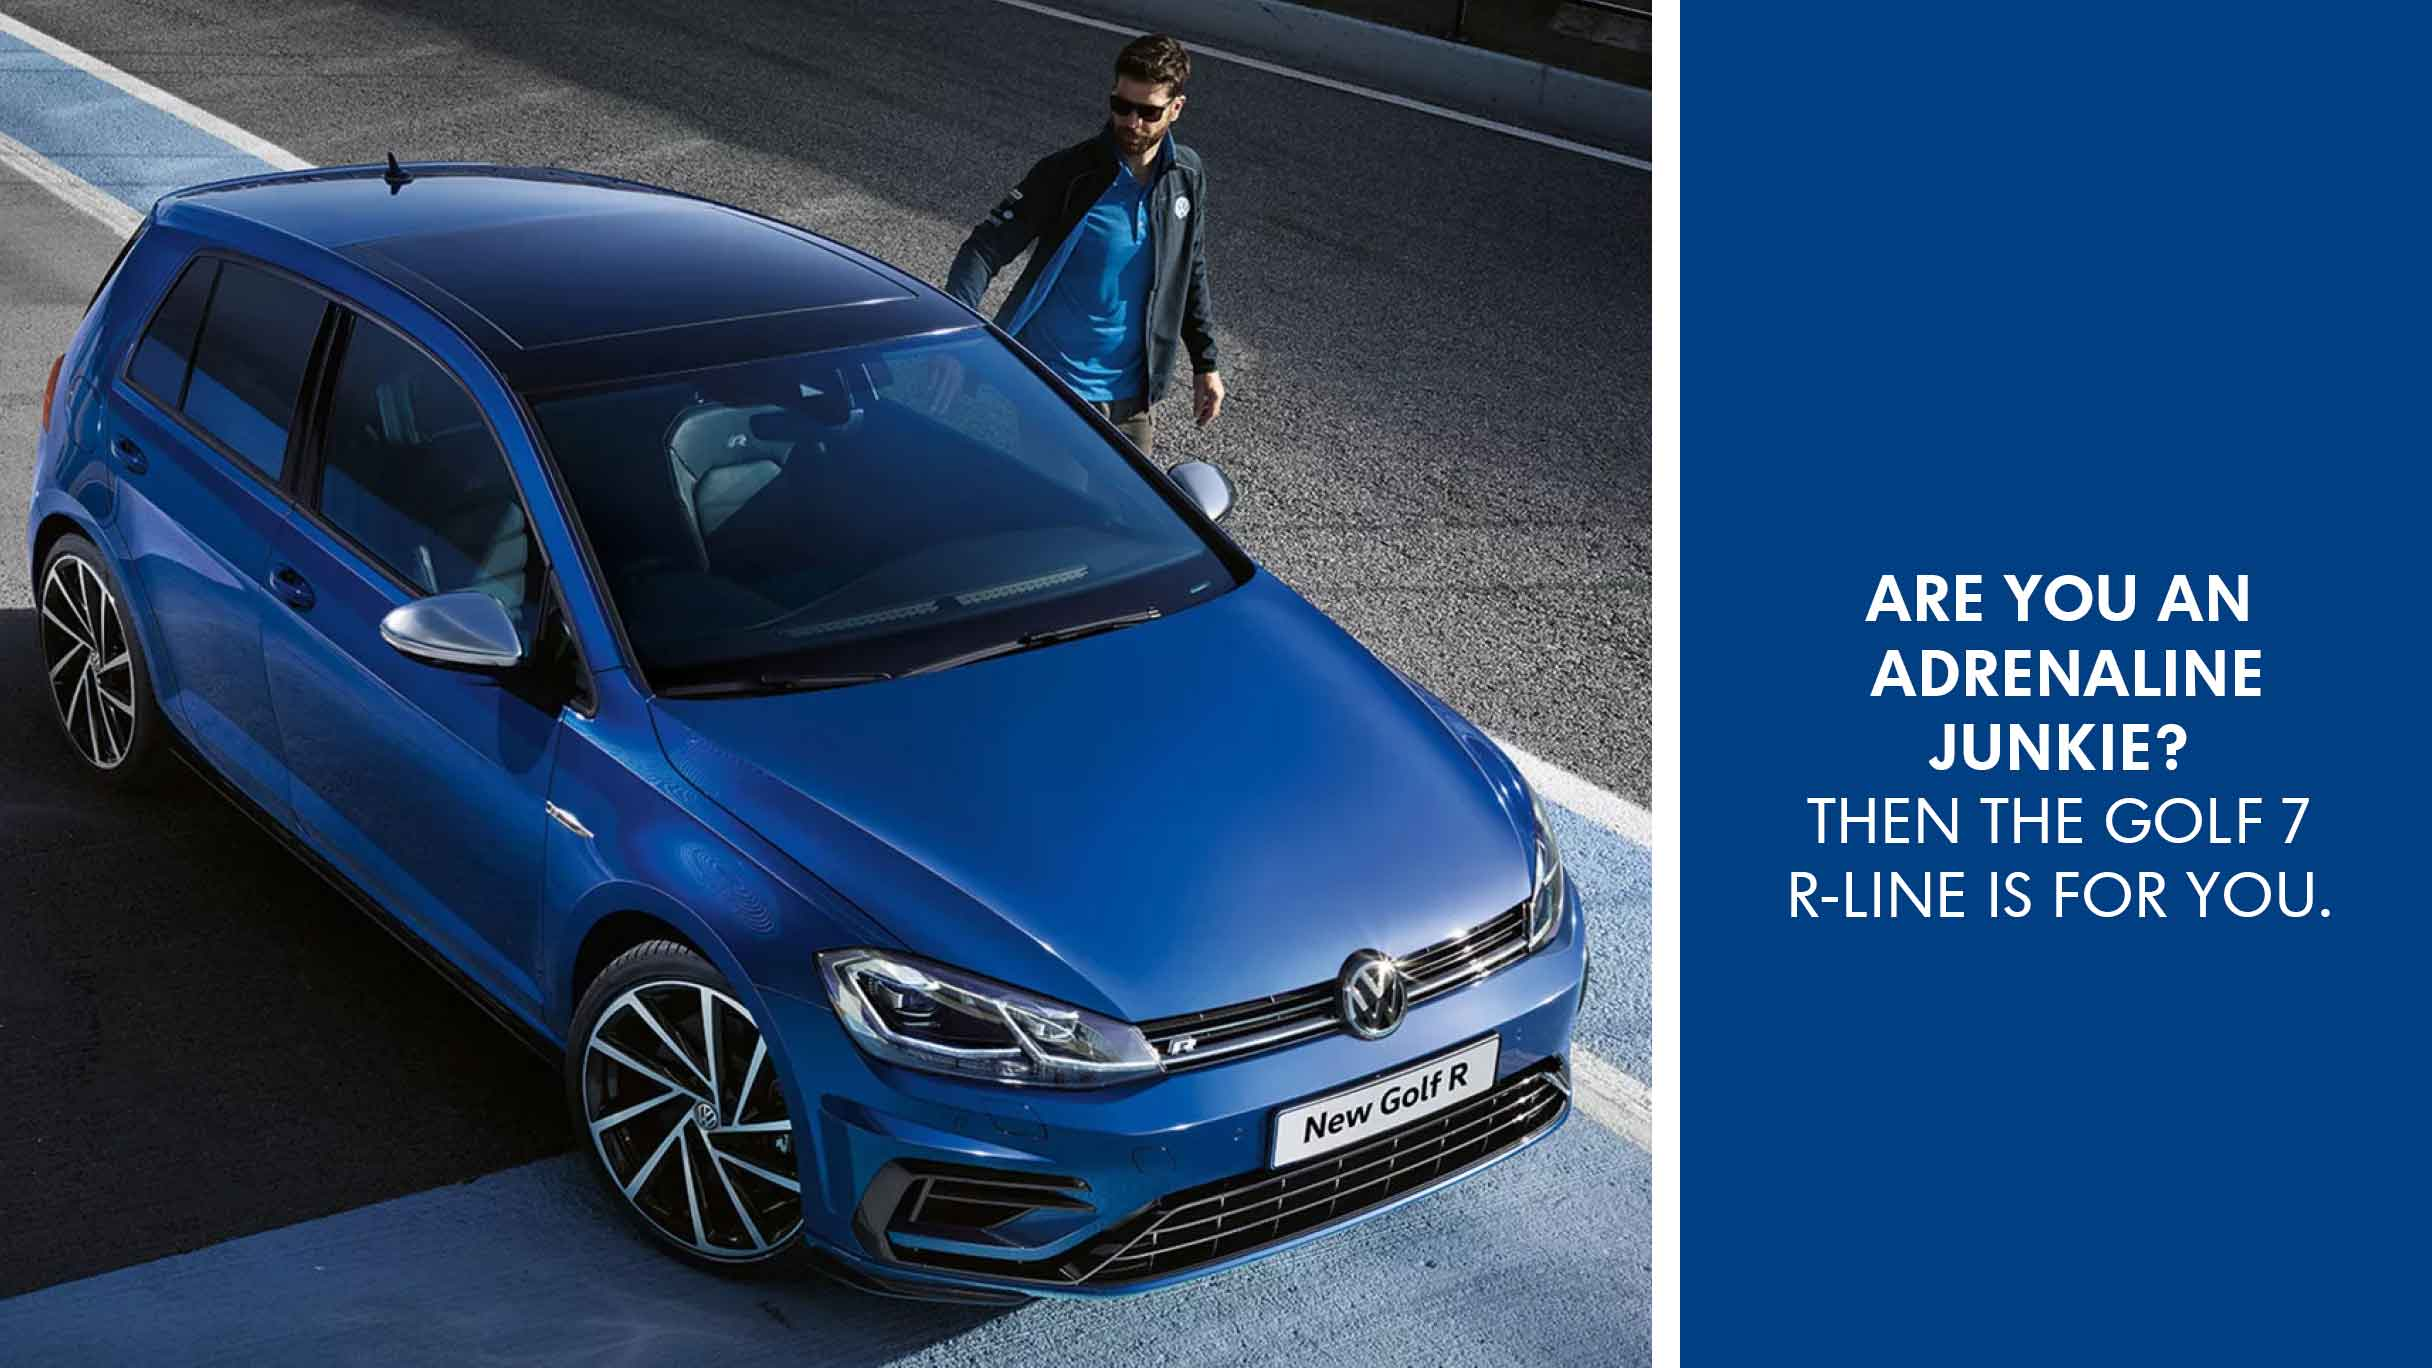 Barons Cape Town Golf 7 R-Line deal